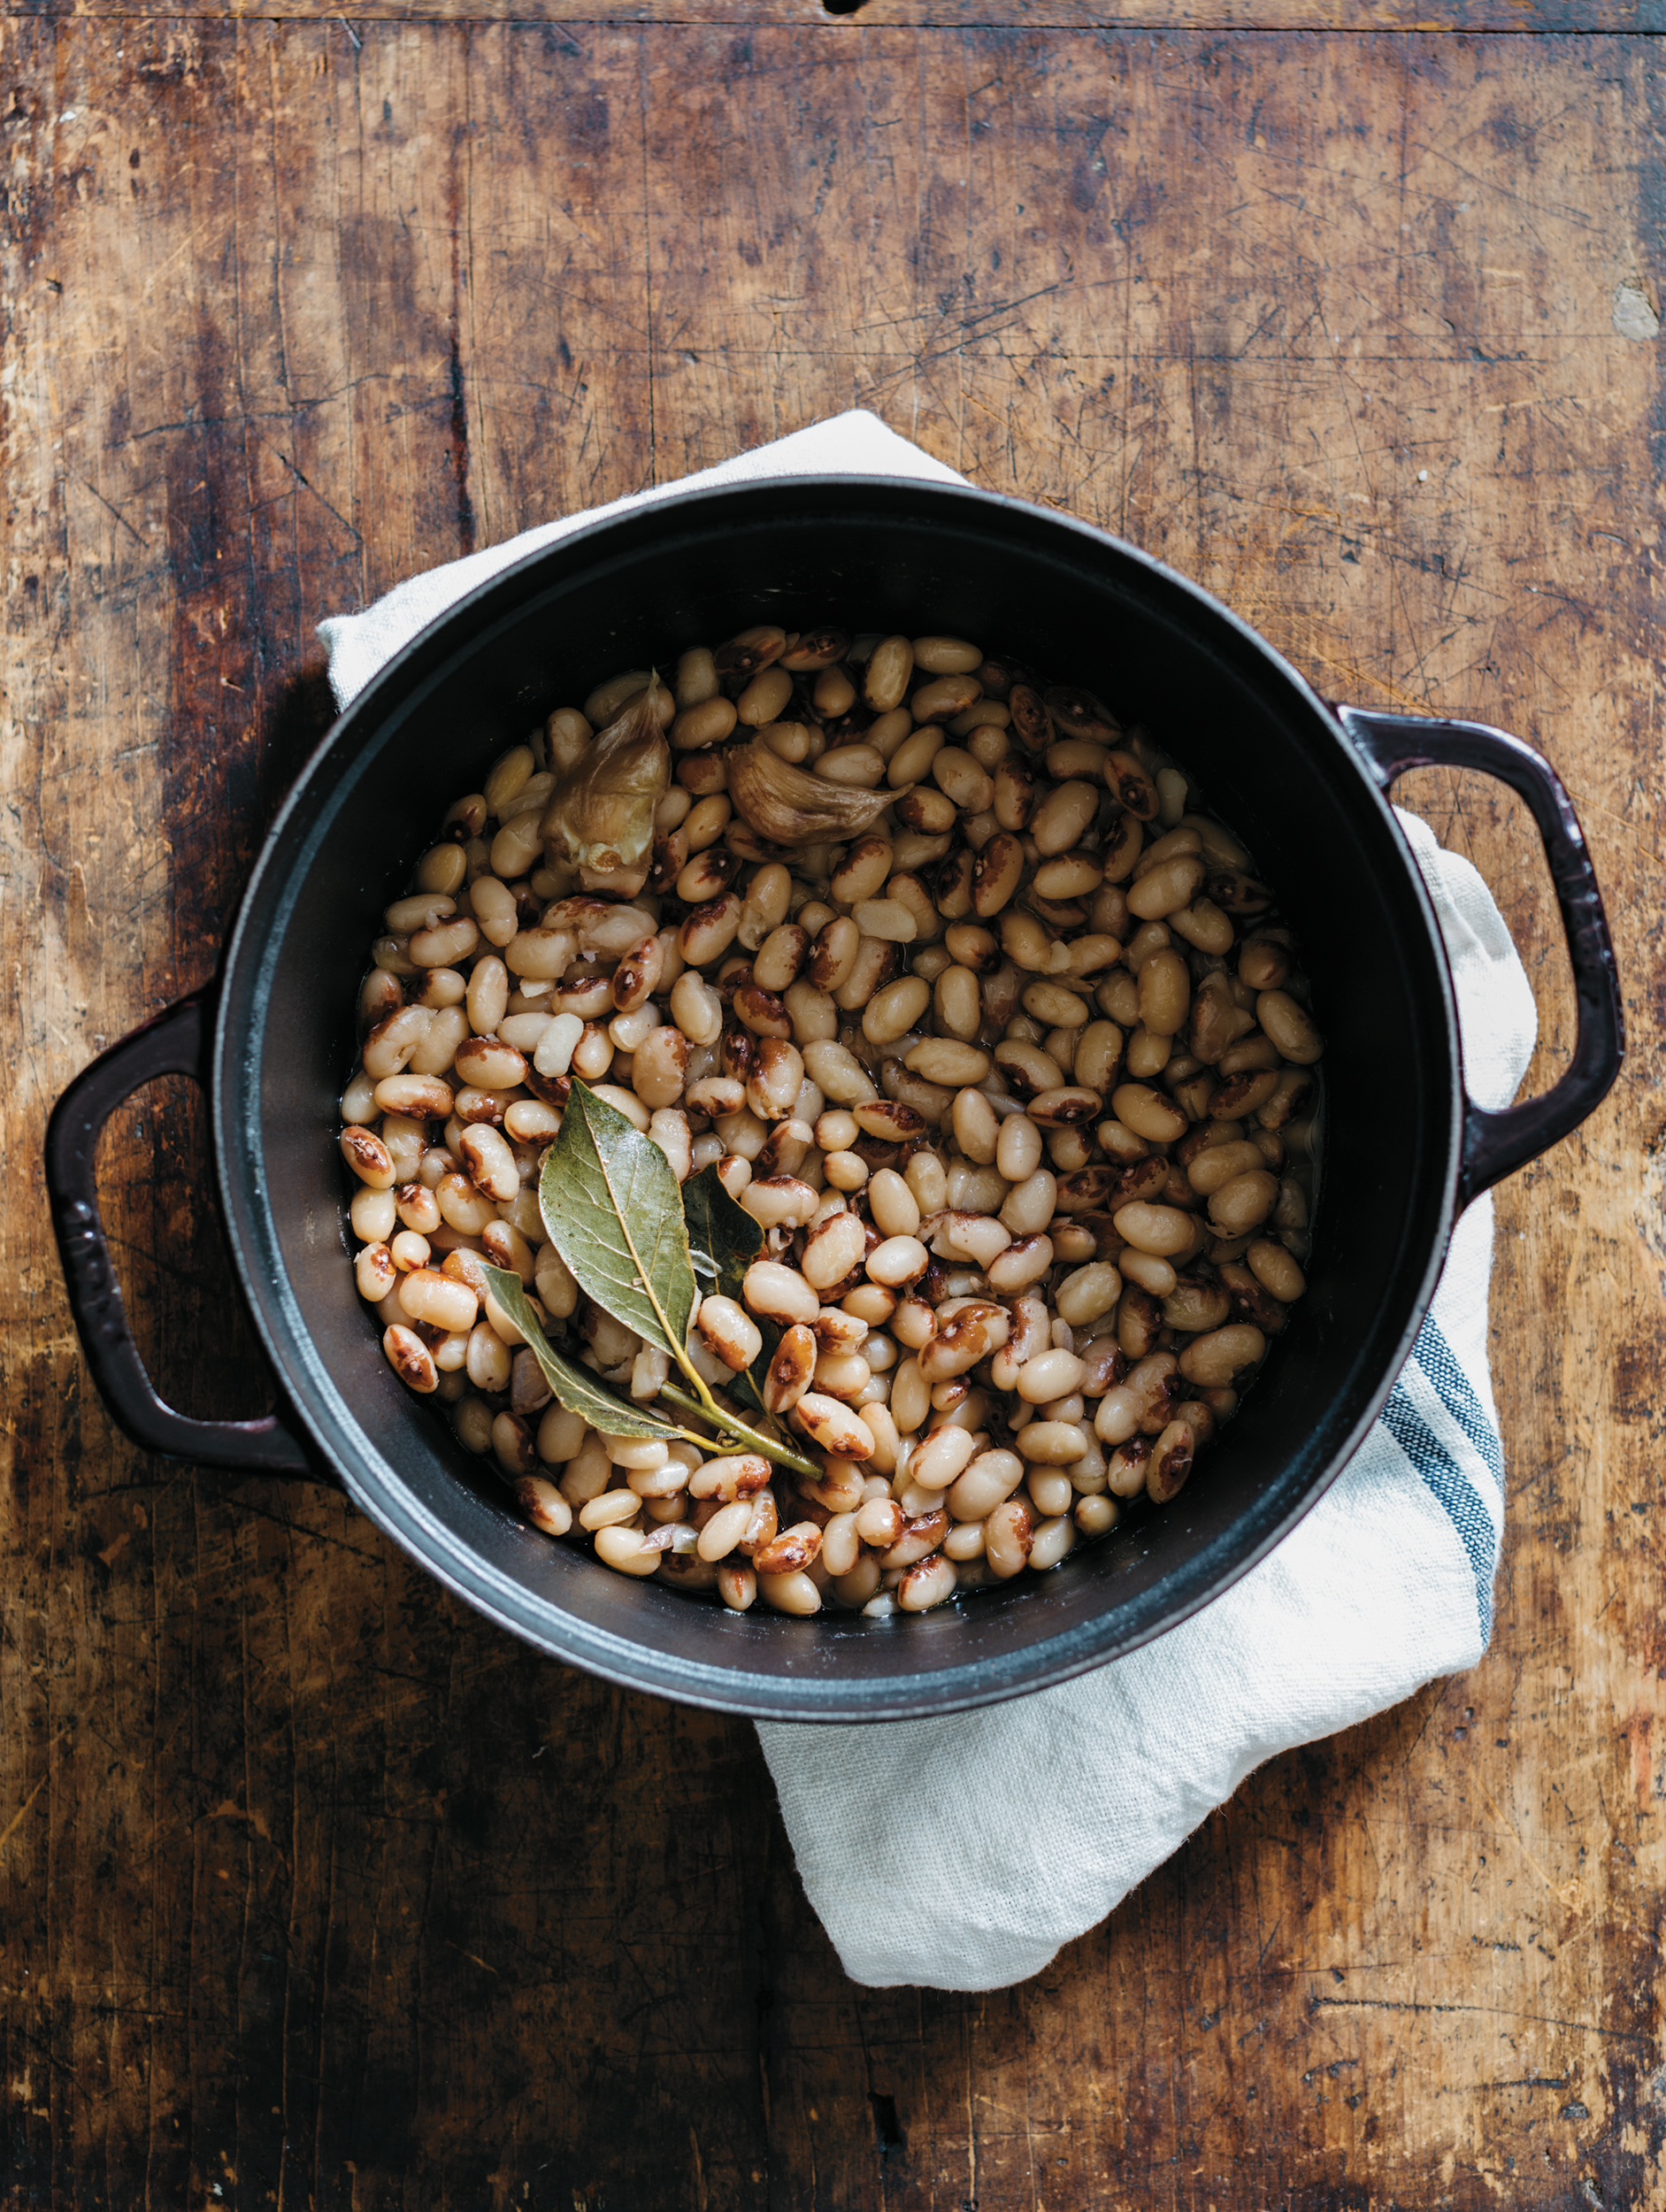 CookedBeans-7049-Edit_WEB.jpg